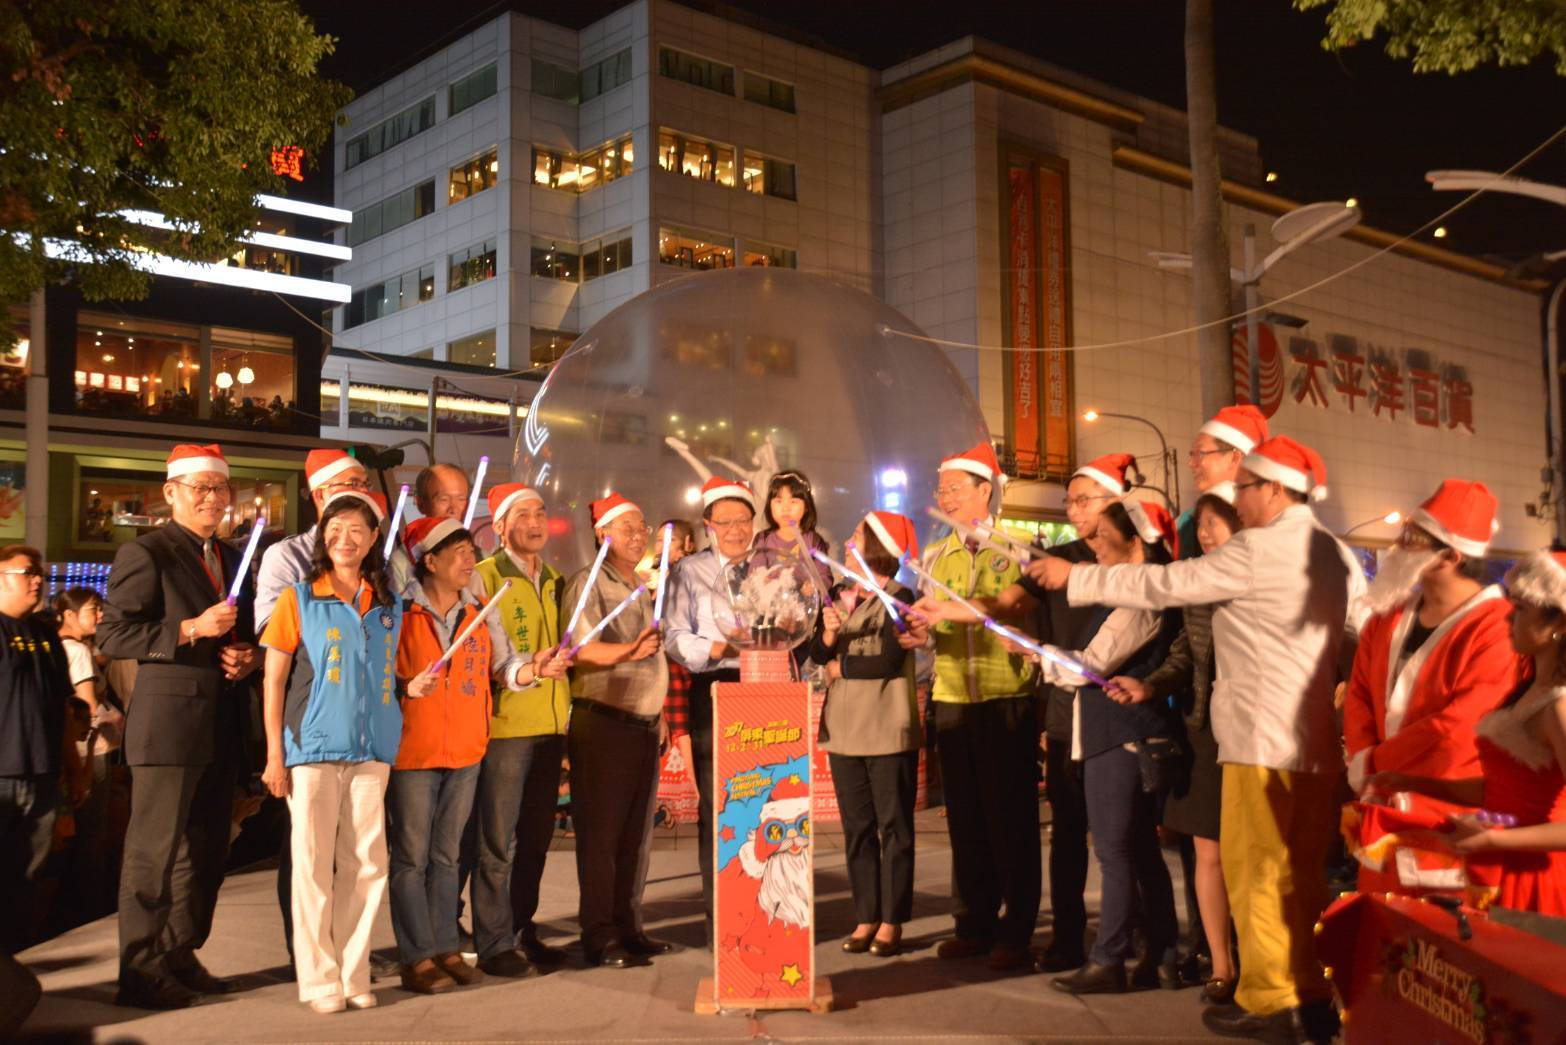 Encounter Northern X'mas in the southern land, Viewing Fantastic Wonders of Pingtung X'mas